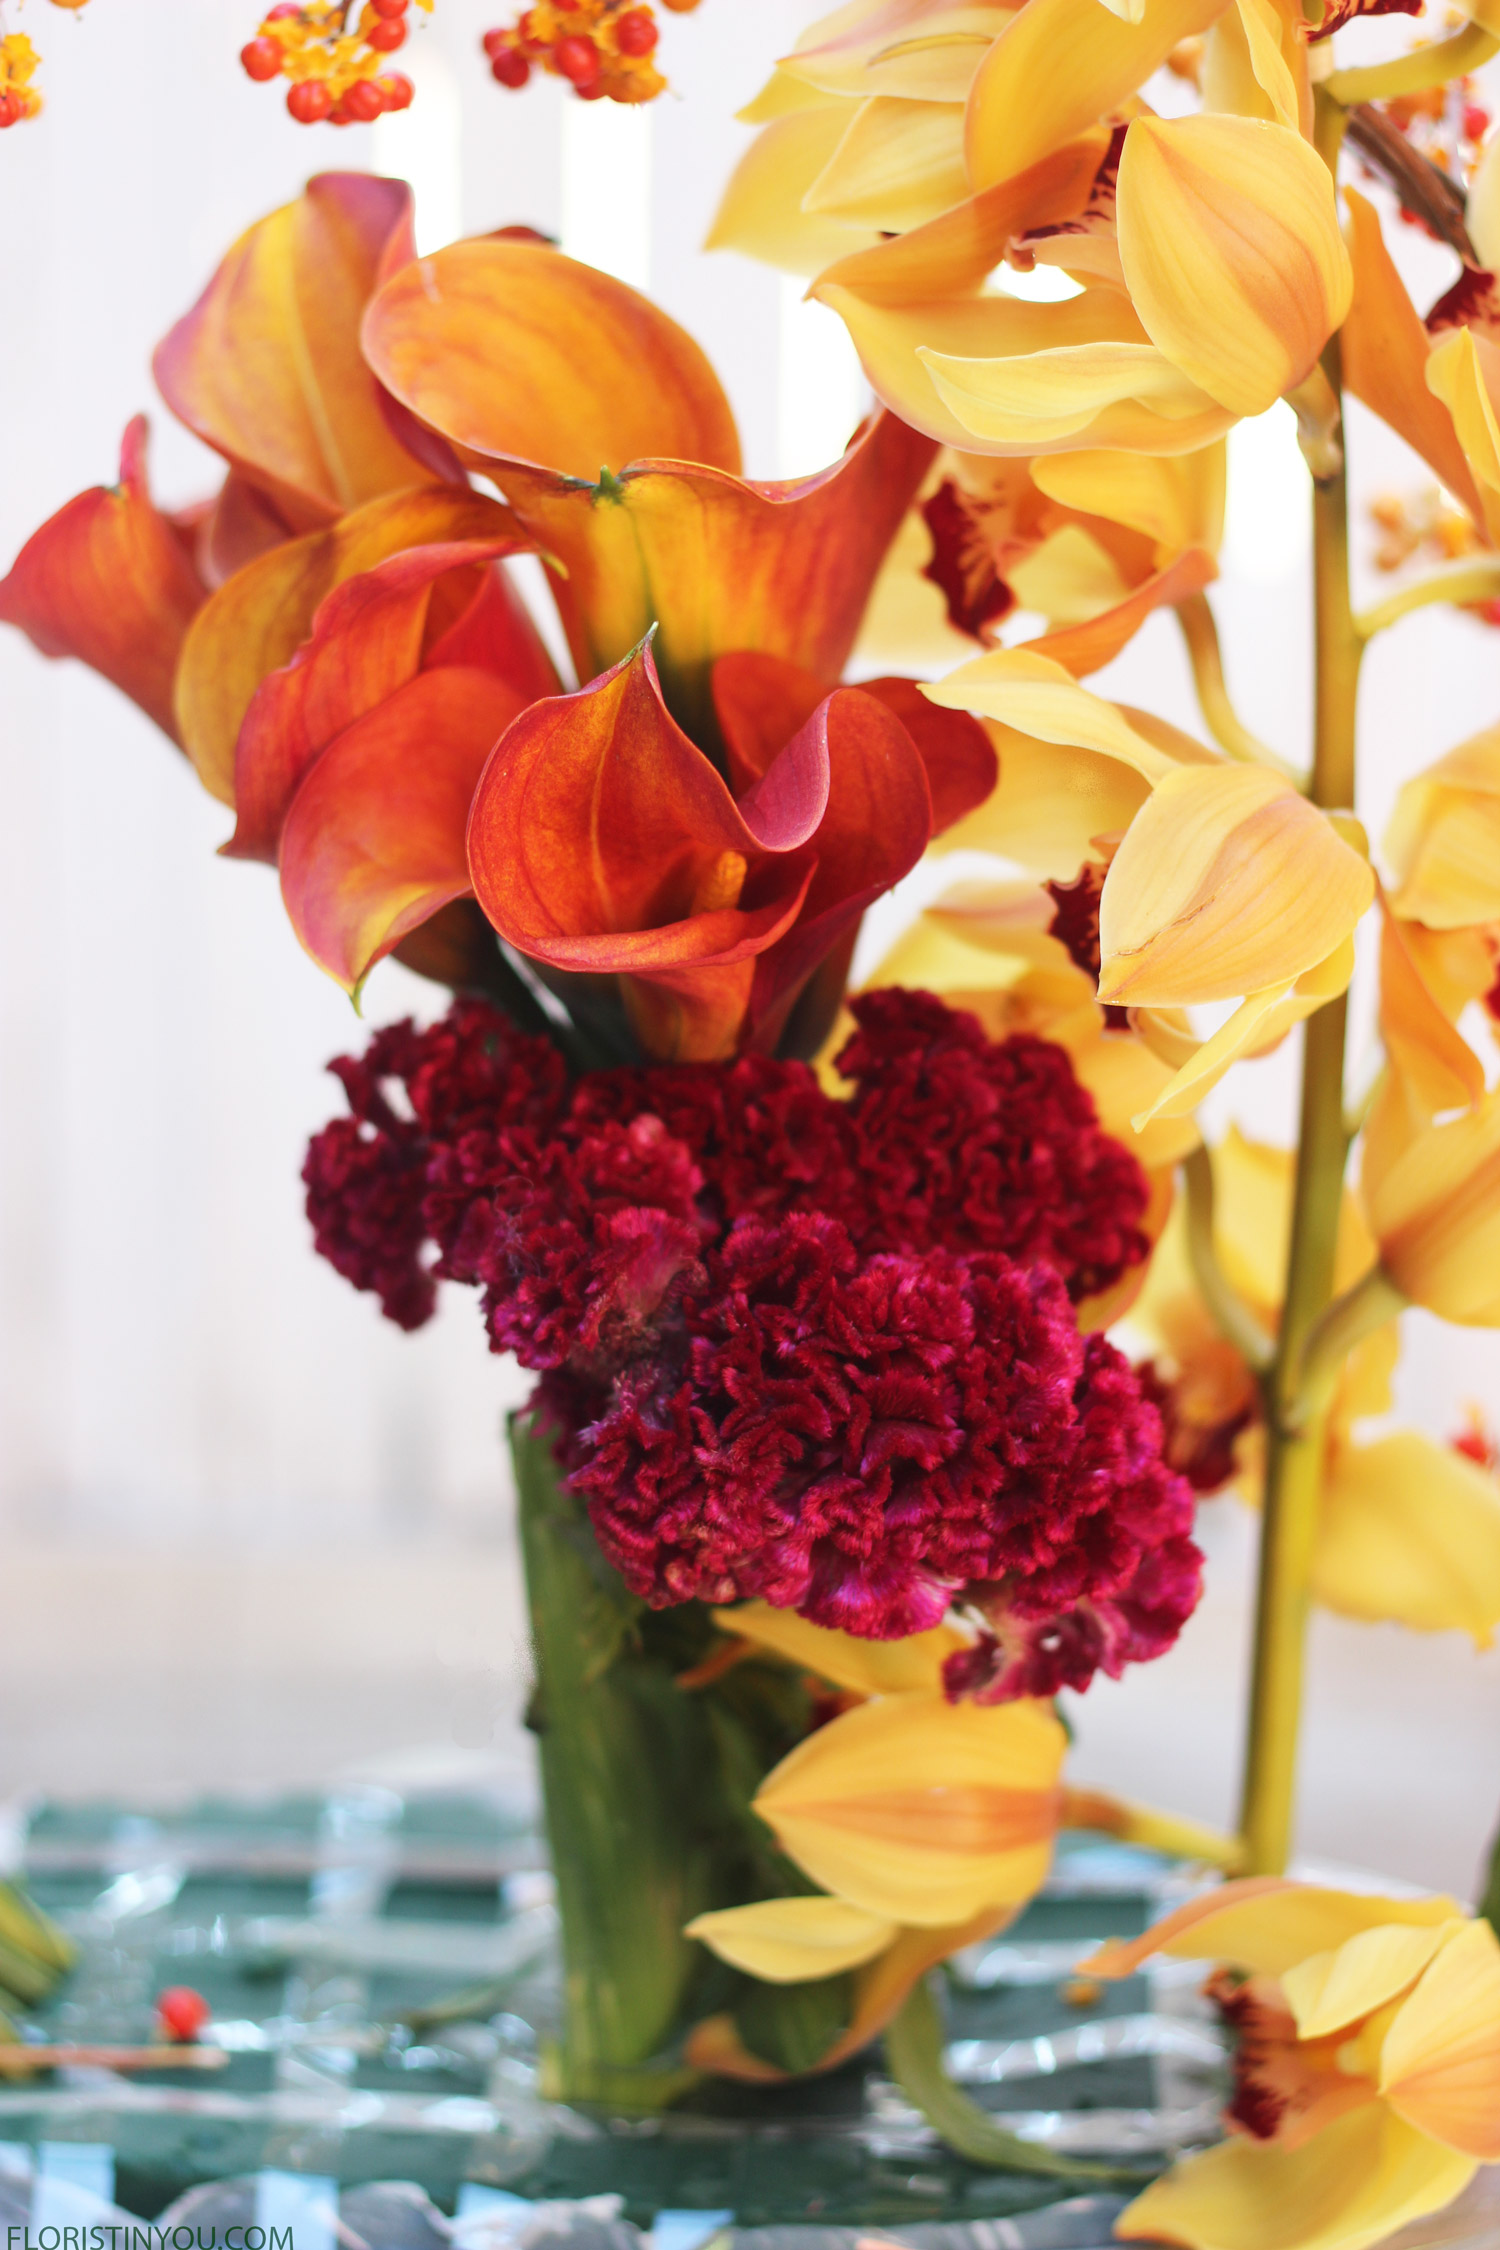 Cut 2 Burgundy Celosia. Insert in front of Calla Lilies; one in front and one in back.